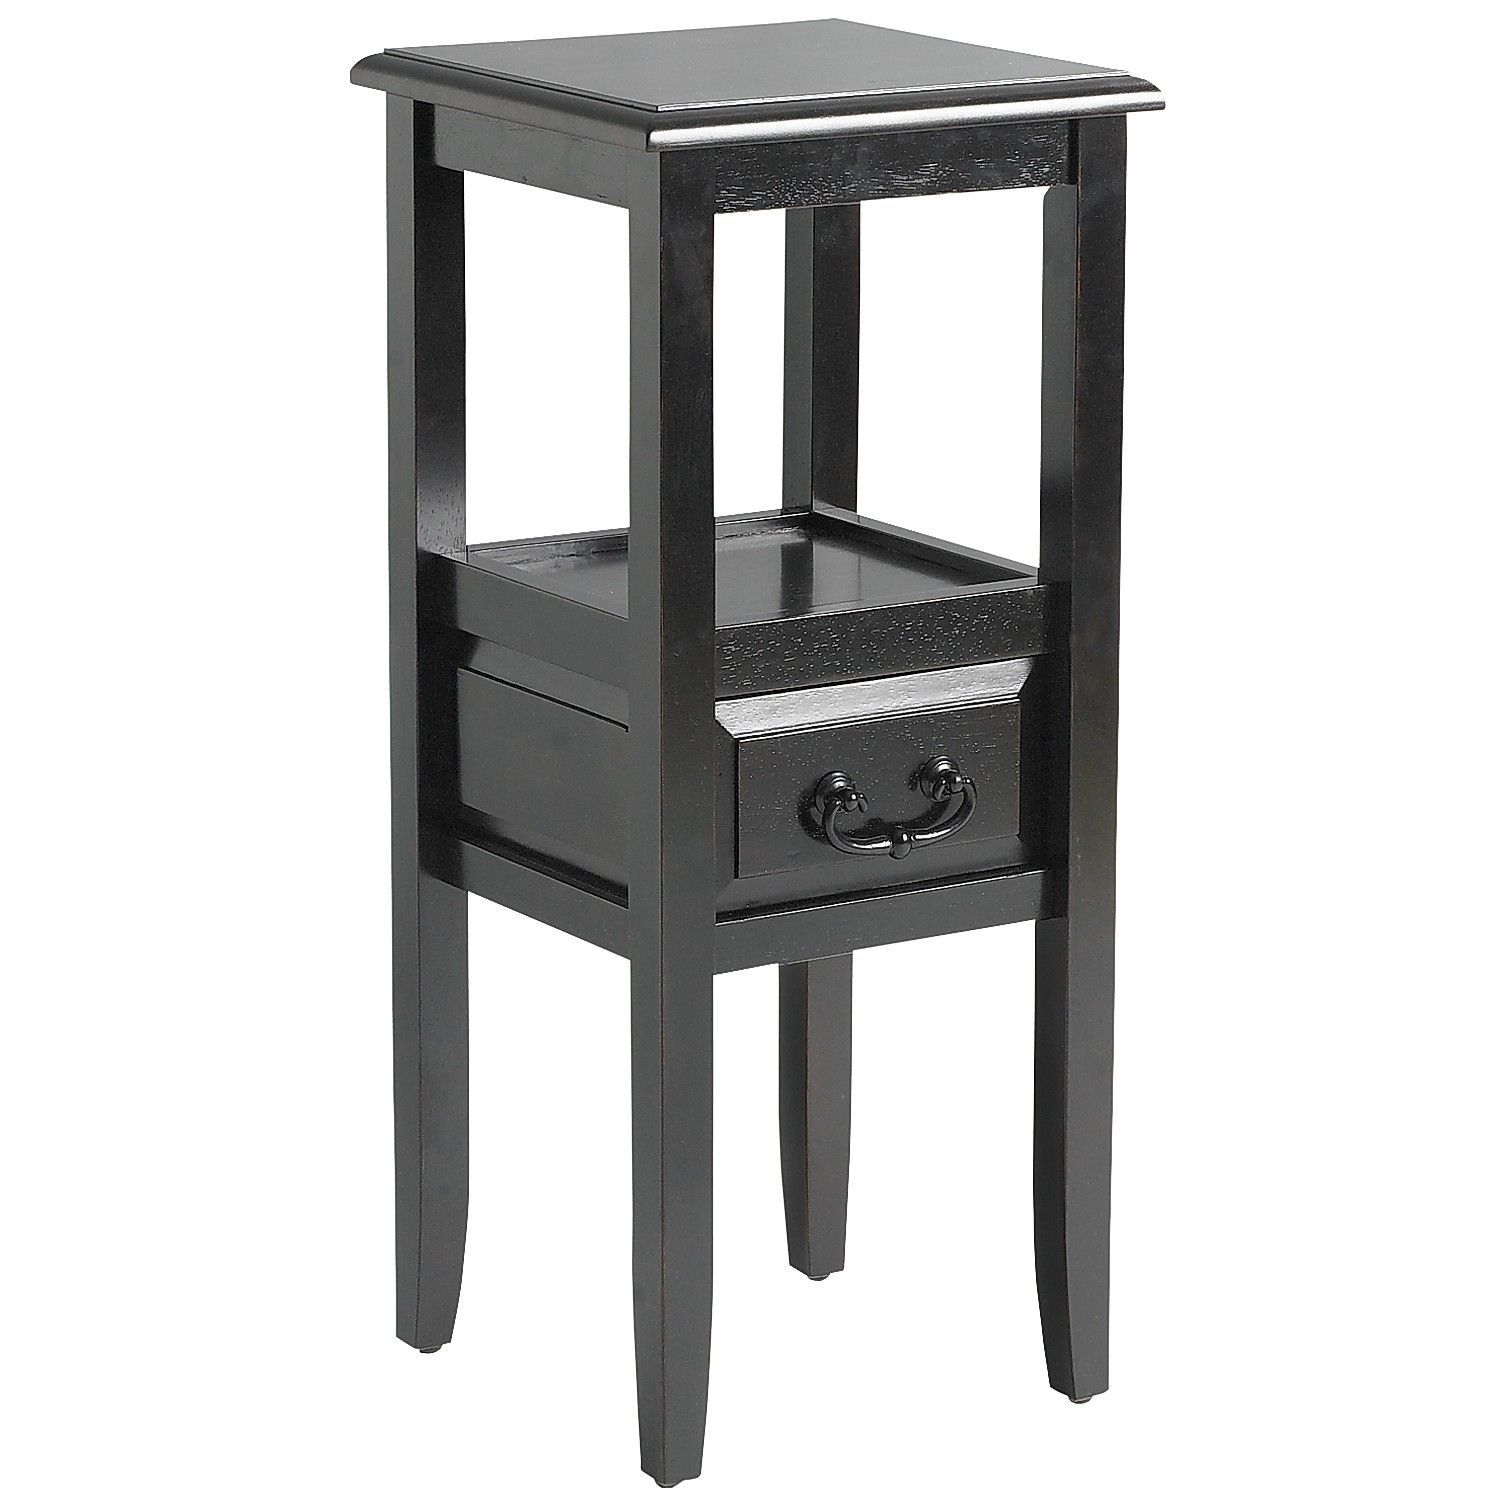 anywhere rubbed black pedestal table with pull handles products kenzie accent target kitchen furniture outdoor built cooler kindle fire small silver lamps nic tables nautical bar